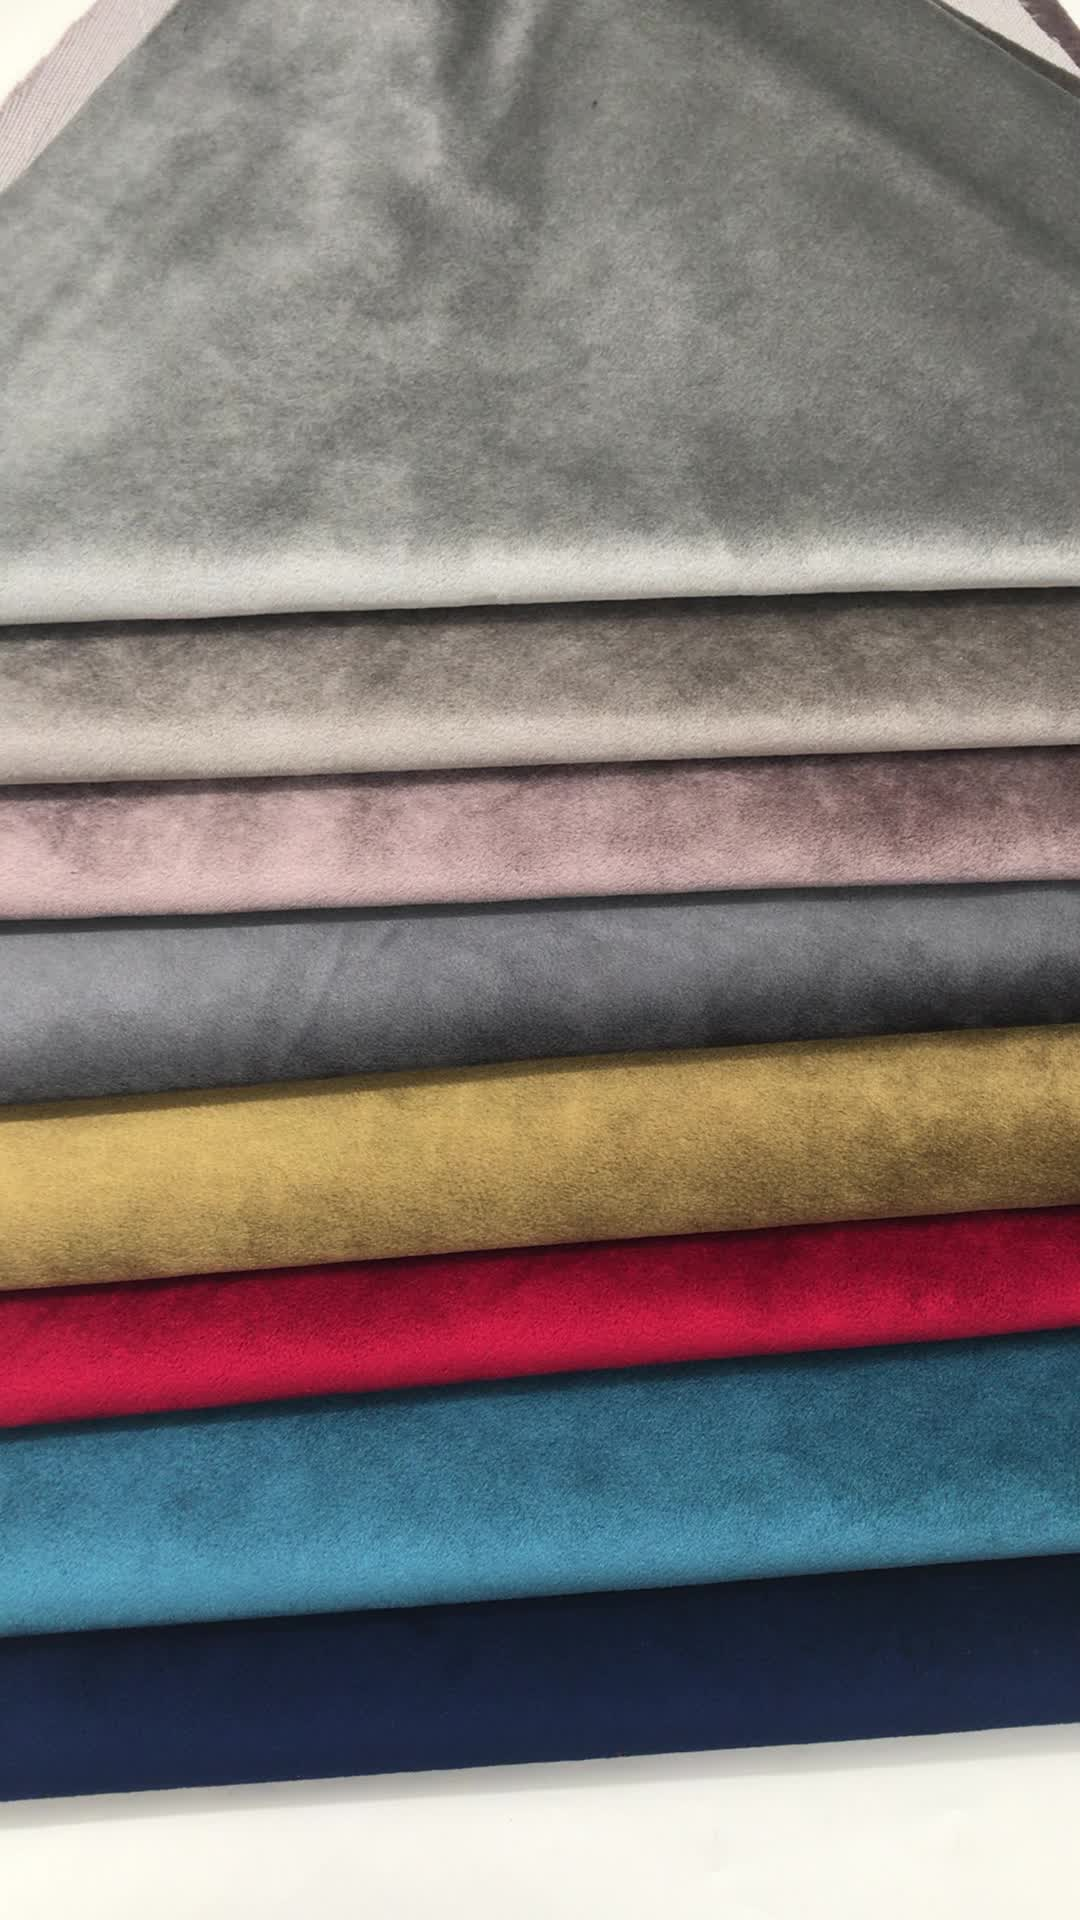 Wholesaler 100% polyester plain shiny italian curtain furniture upholstery fabric